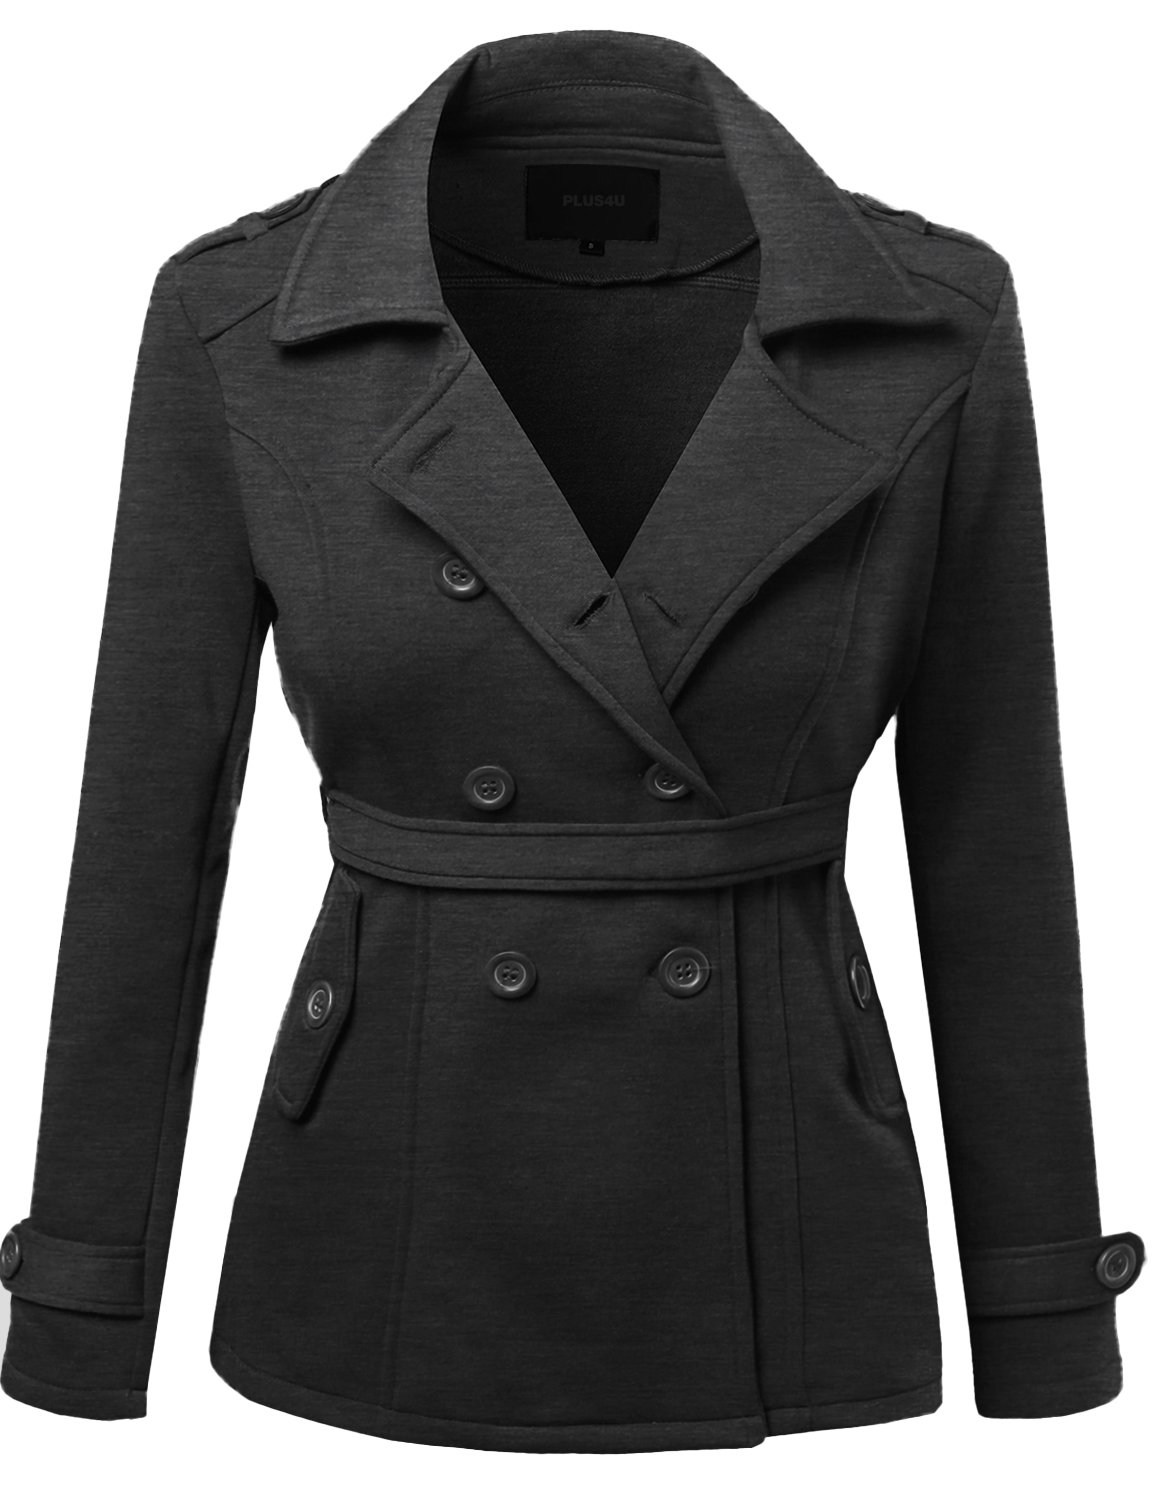 Beautiful Cotton Blend Classic Double Breasted Trench Coat Charcoal Size XL